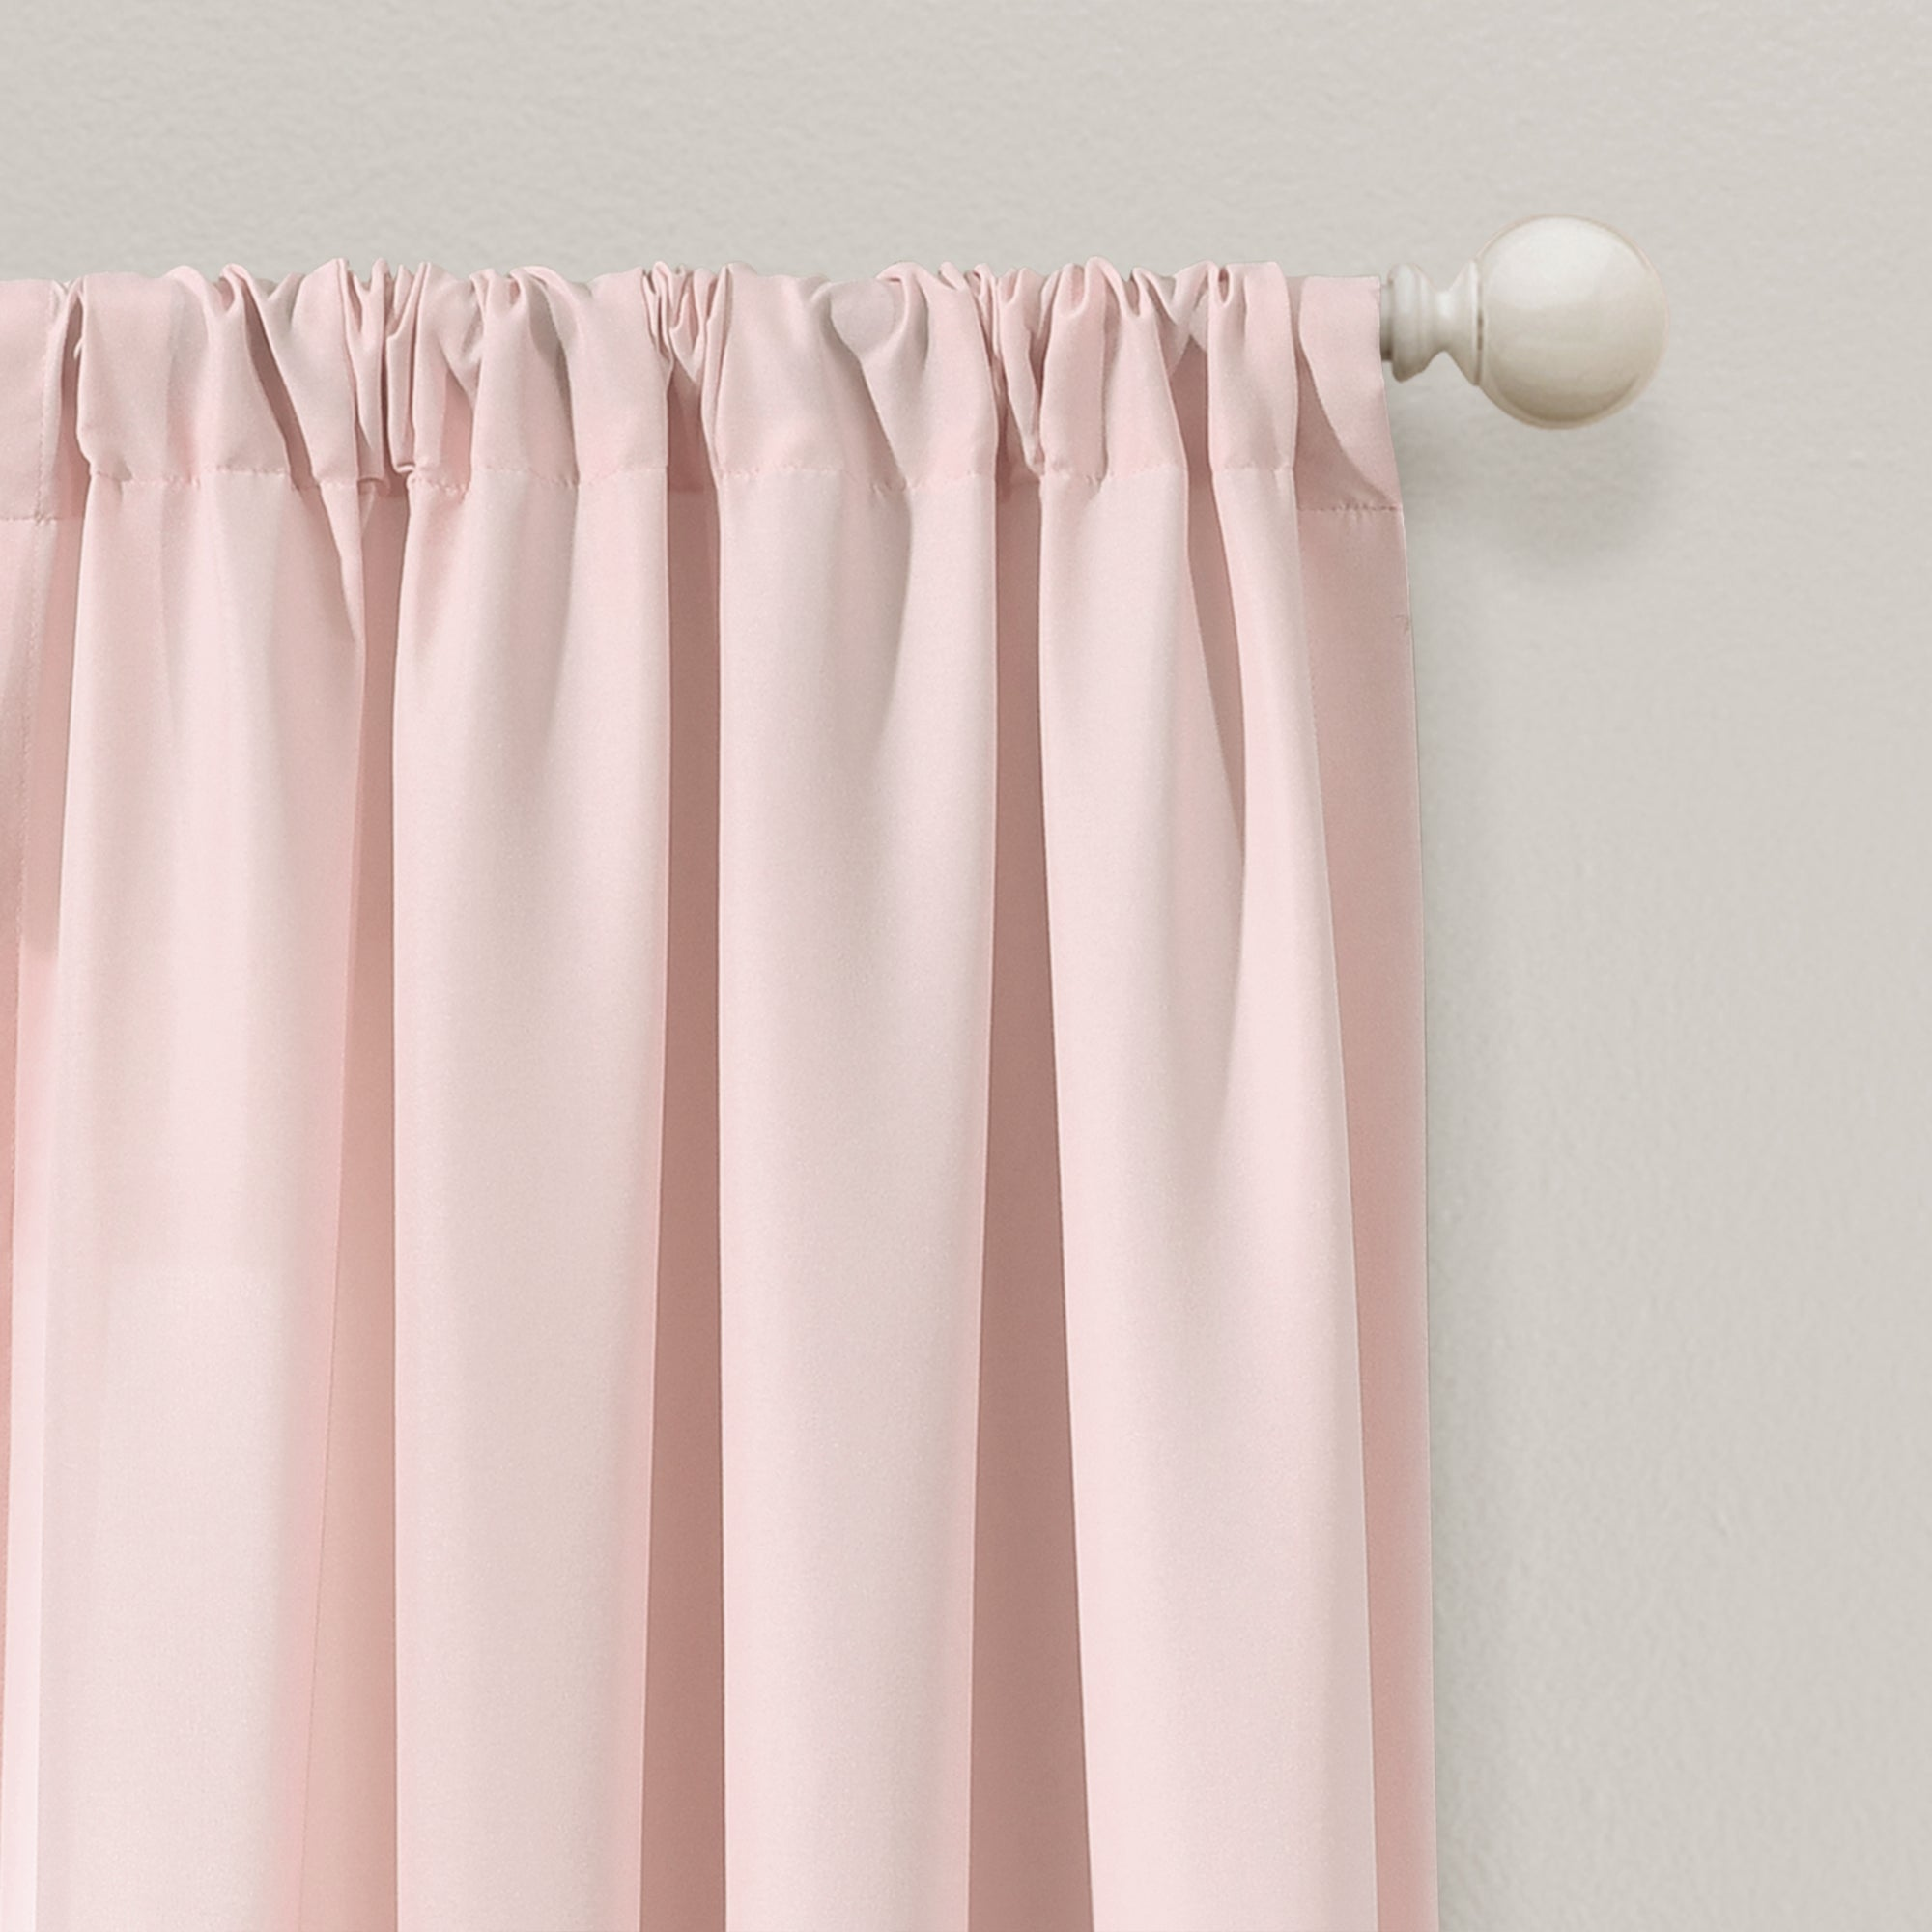 Tulle Skirt Colorblock Window Curtain Panel Set